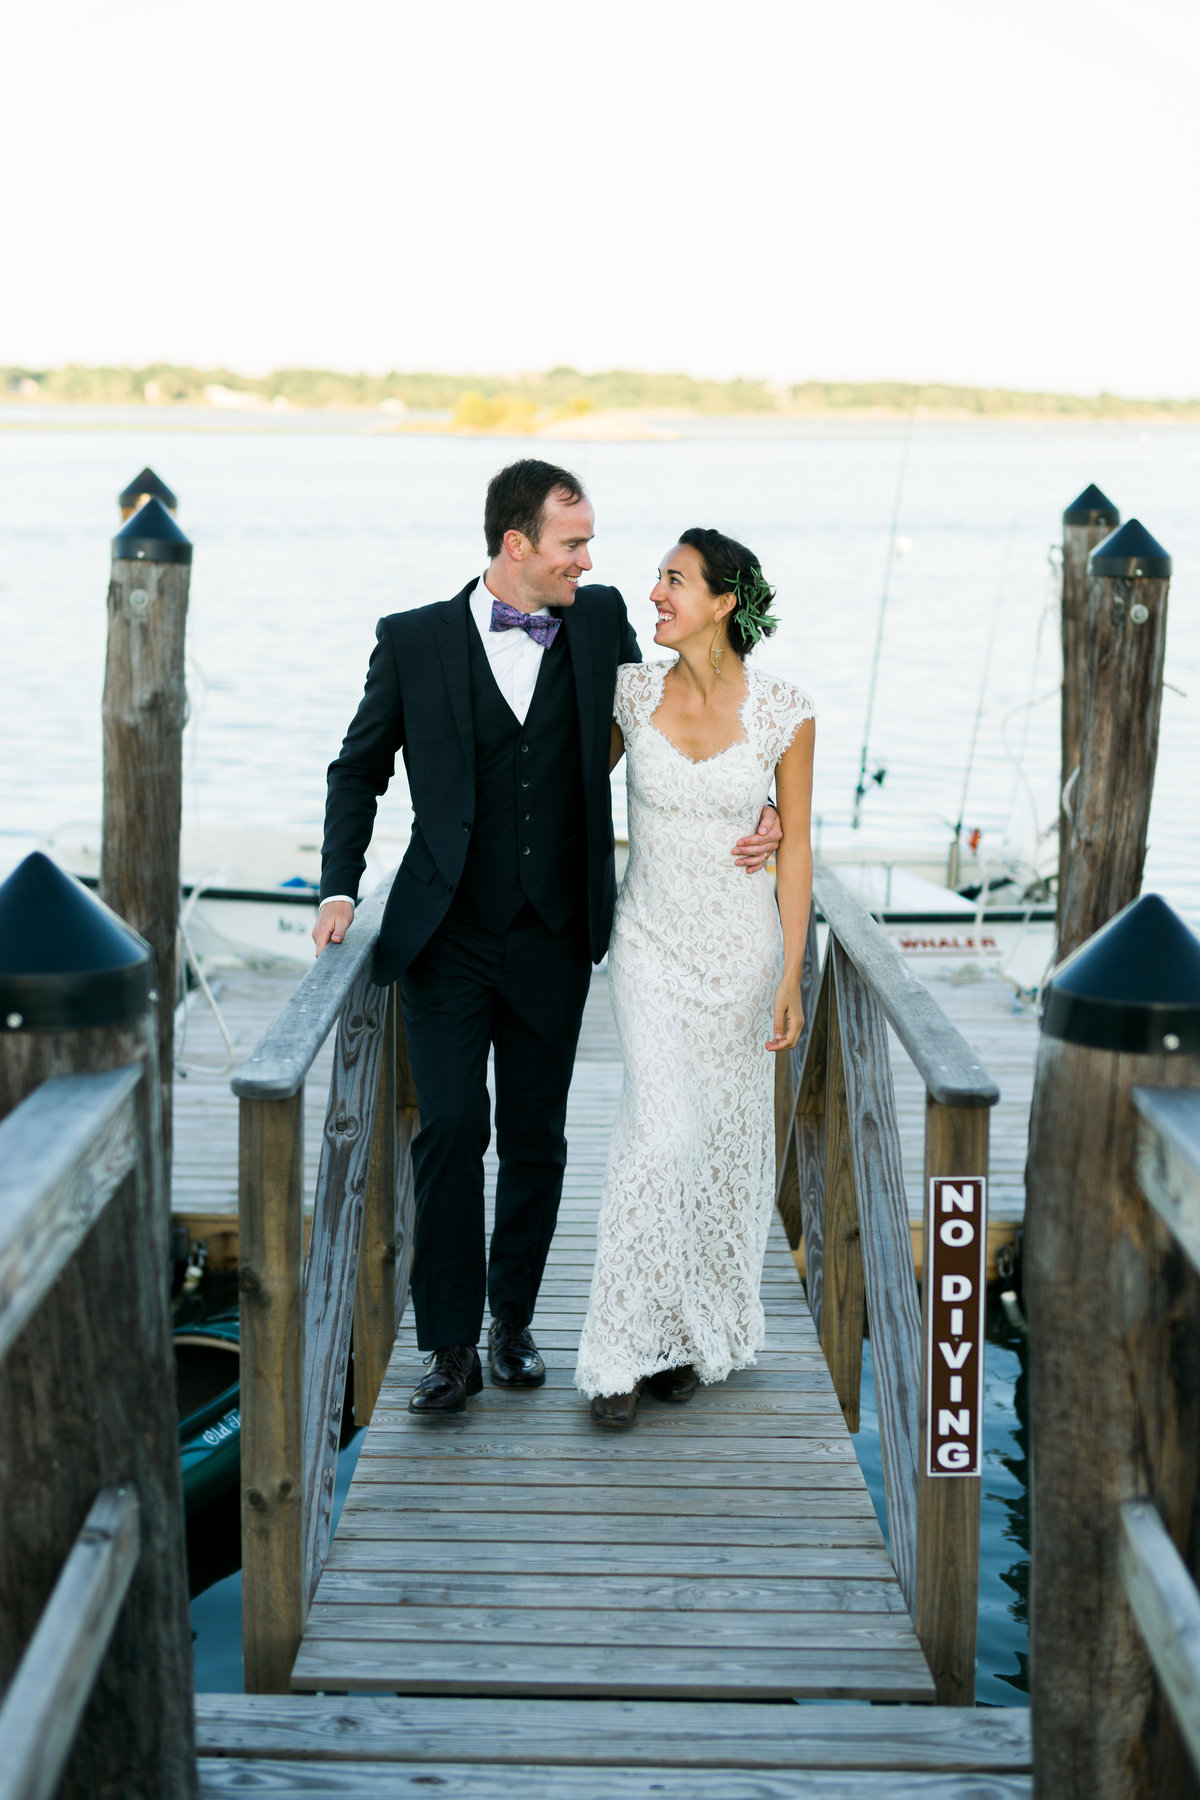 Bride and Groom photo on dock